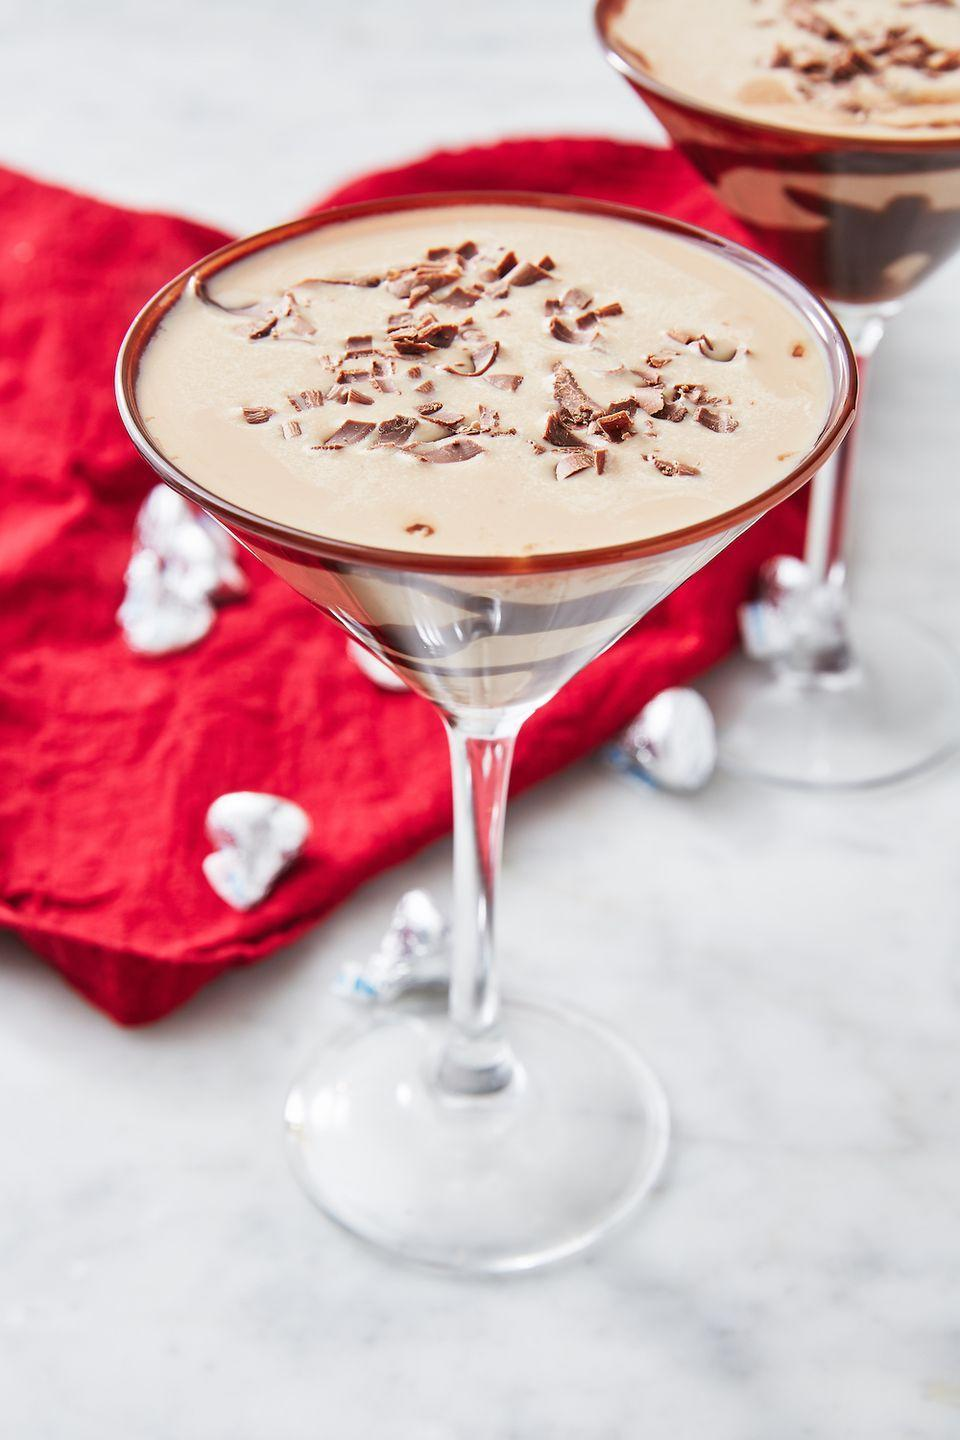 """<p>The perfect combo of boozy and sweet. </p><p>Get the recipe from <a href=""""https://www.delish.com/cooking/recipe-ideas/recipes/a228/chocolate-martini-recipe/"""" rel=""""nofollow noopener"""" target=""""_blank"""" data-ylk=""""slk:Delish"""" class=""""link rapid-noclick-resp"""">Delish</a>. </p>"""